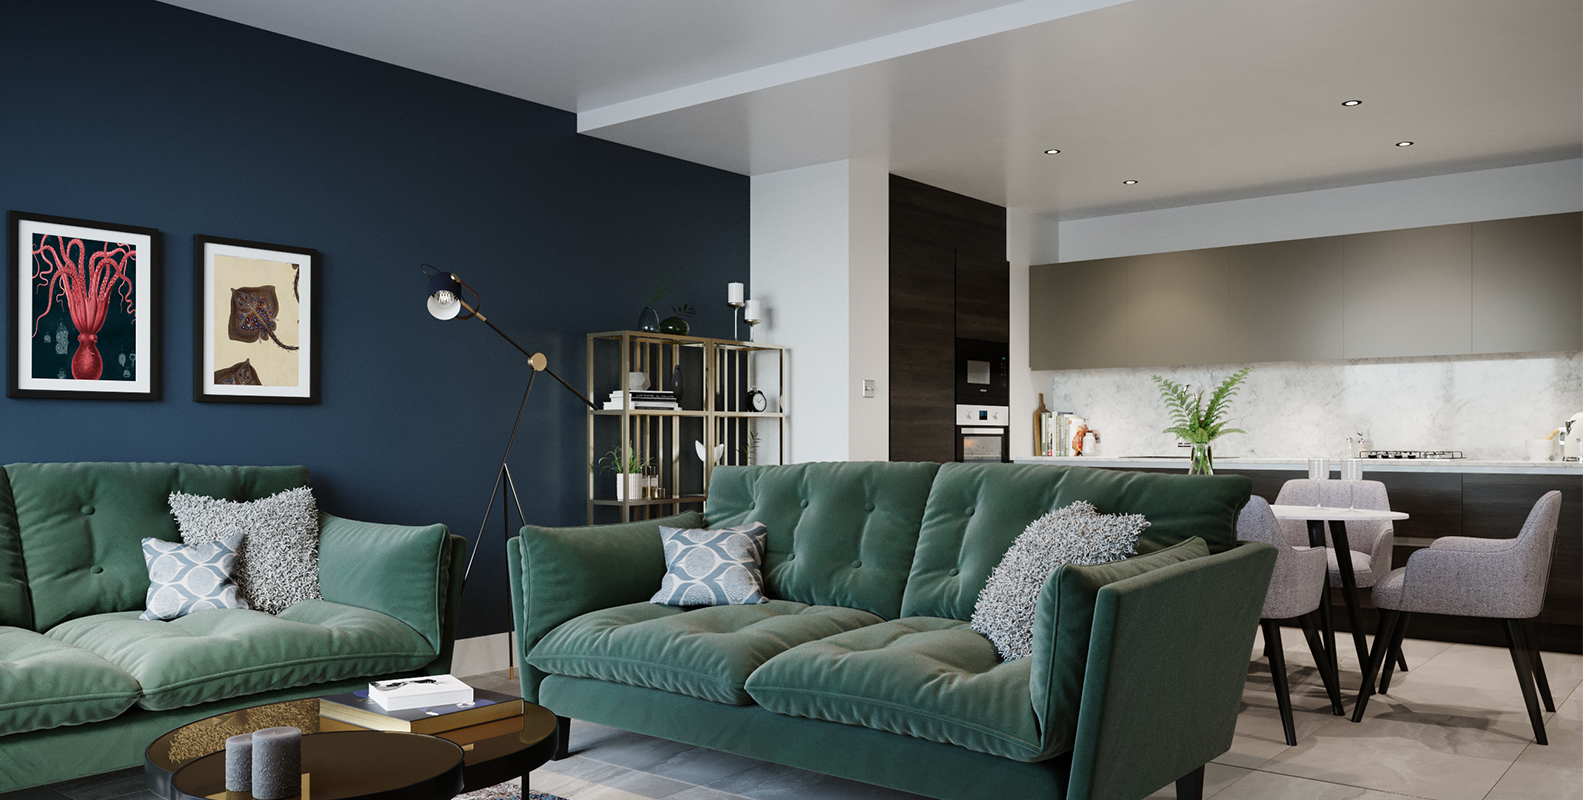 Living space with green sofas, artwork and open plan kitchen in the background